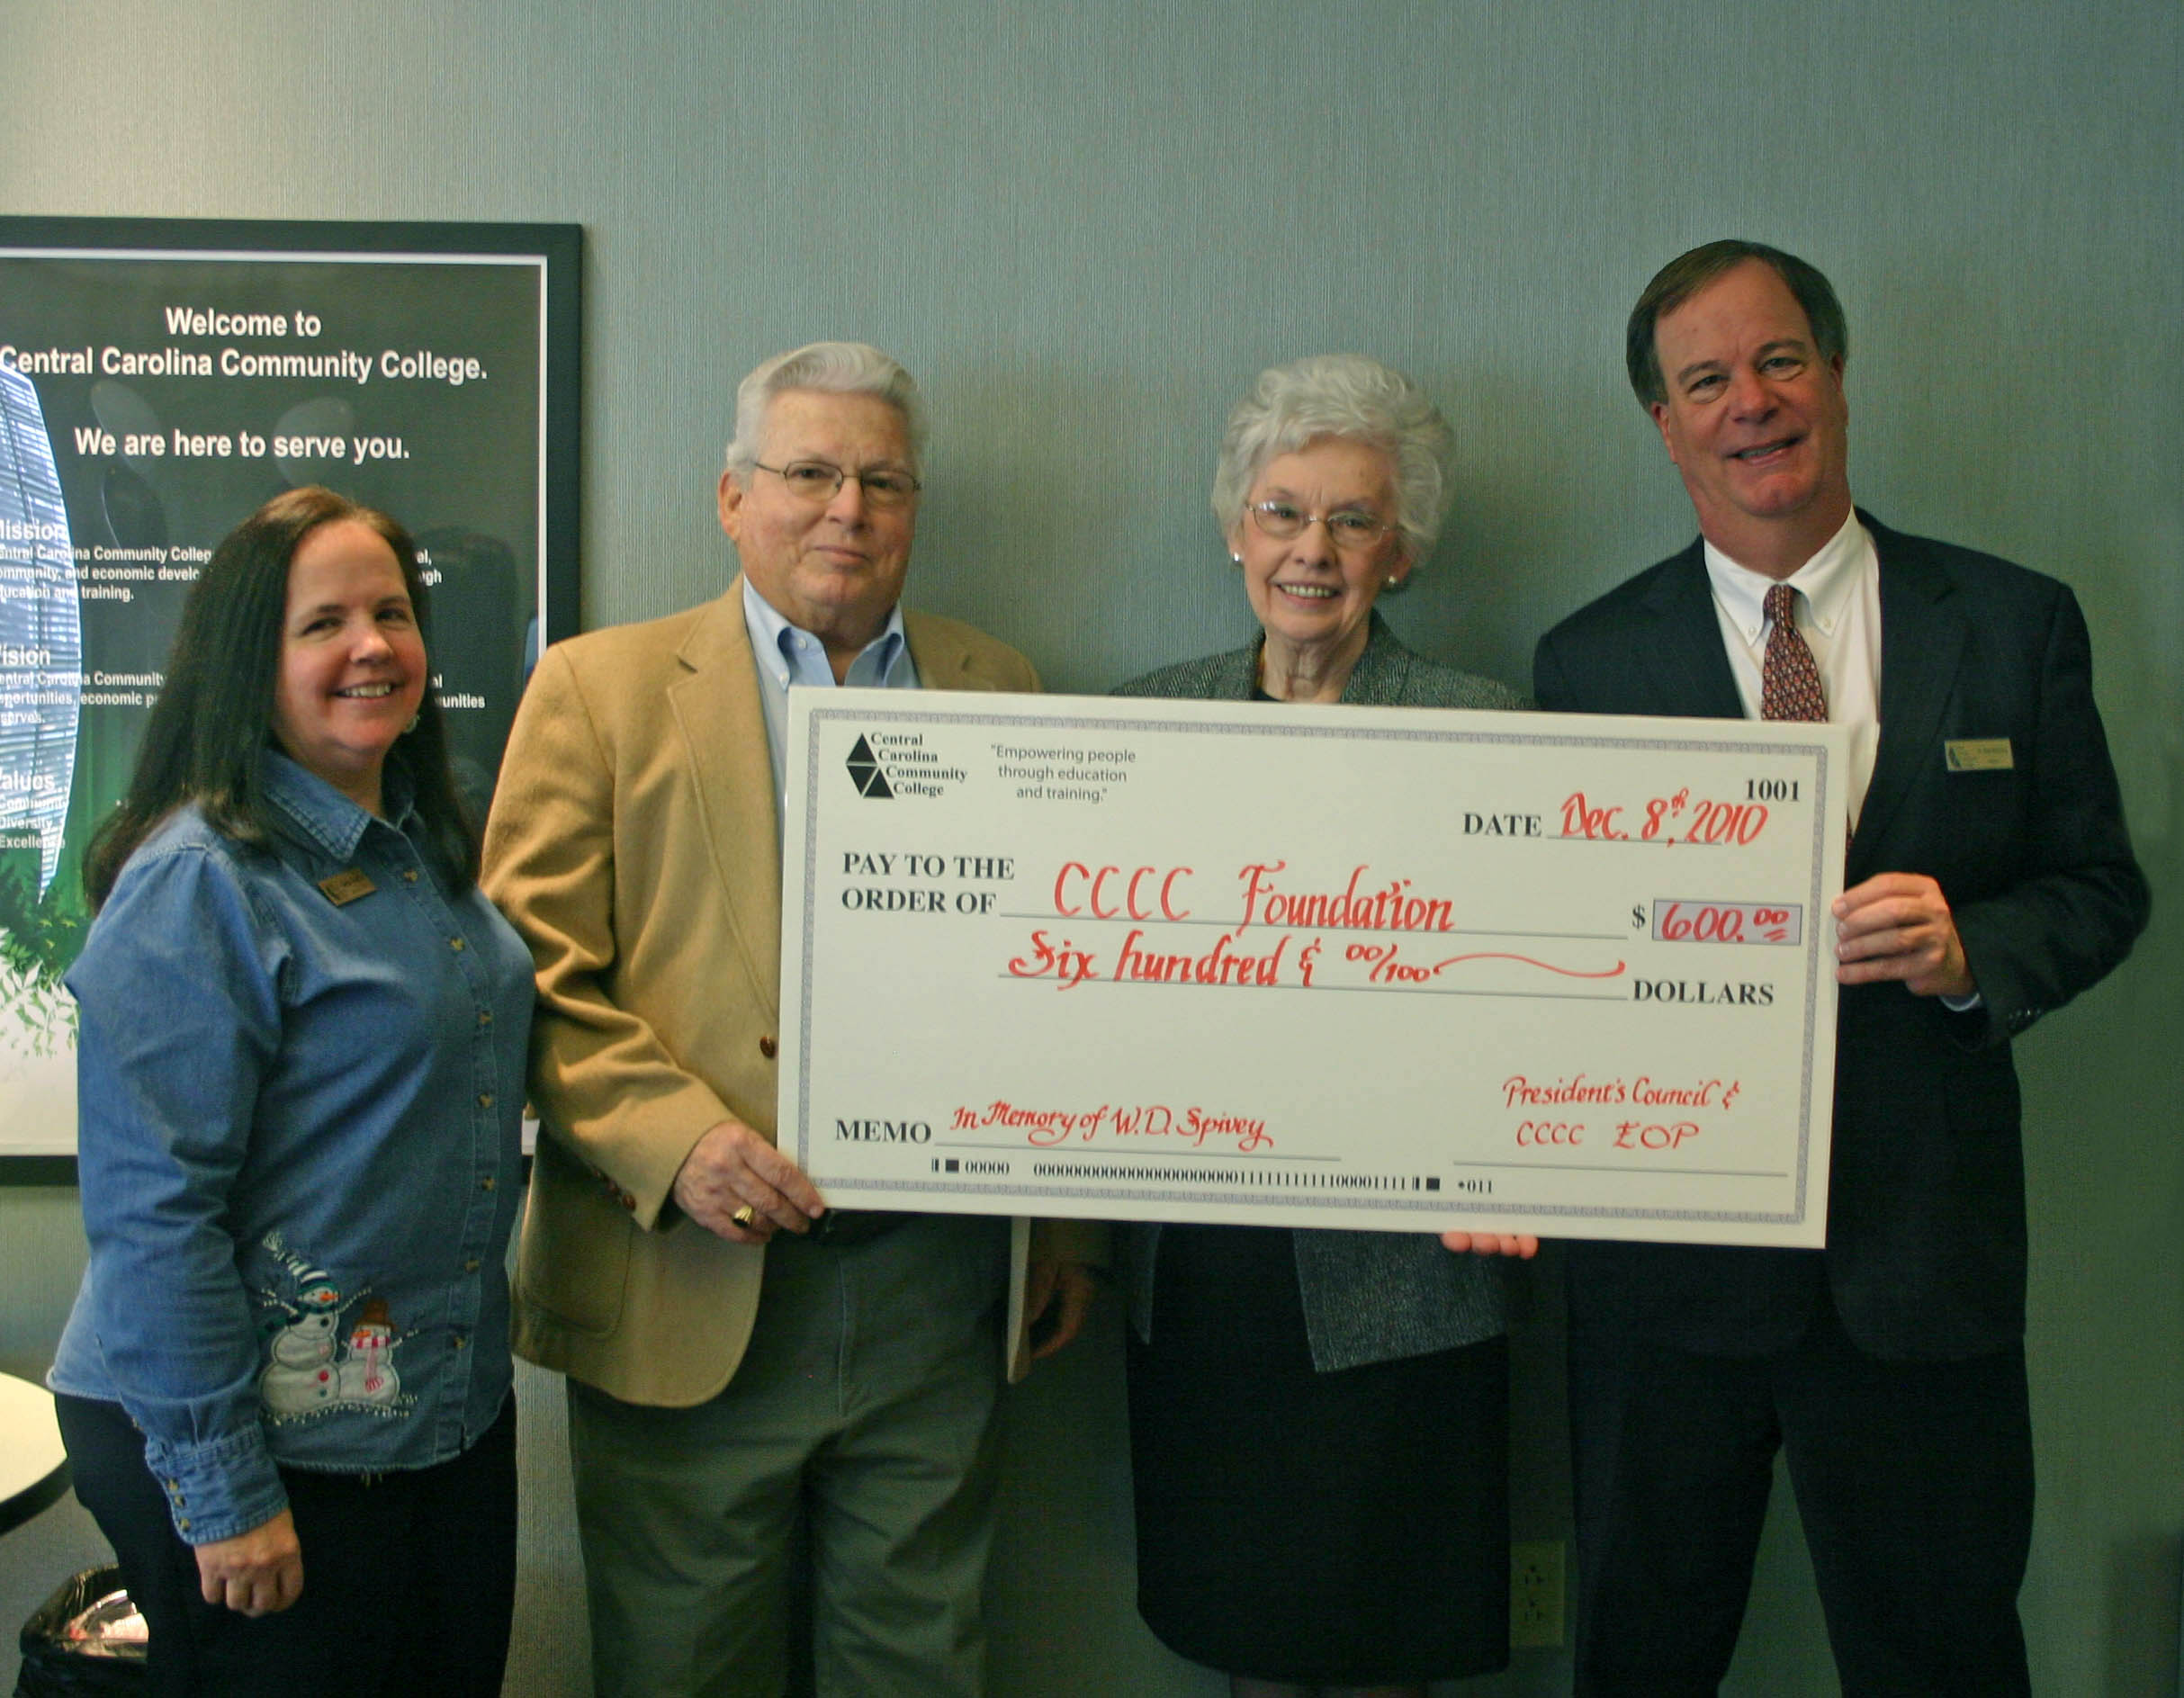 Click to enlarge,  Linda Spivey (second from right), employment specialist in the Human Resources Department at Central Carolina Community College, retired in December after a 33-year career with the college. In her honor, the CCCC President's Council and the college's chapter of the North Carolina Association of Educational Office Professionals established the Walter D. Spivey Memorial Scholarship with the CCCC Foundation. Walter, the son of Linda and David Spivey, graduated from the college. He was the owner and operator of Mid-Carolina Electric Co., in Sanford, when he passed away in 2010. Martha Wilkie (left), NCAEOP District 7 president, and CCCC President Bud Marchant (right), present the check to the Spiveys. Linda served under four of the college's five presidents and helped found the CCCC EOP in 1983. She has been an officer in the organization at the college, regional and state level, including state president in 2009-10. She was honored as the local and District 7 Educational Office Professional of the Year in 1992-93 and 2004-05. She was also honored as the District 7 EOPY for 2010-11 and received the organization's President's Award. Linda is a graduate of Sanford Business College and CCCC.